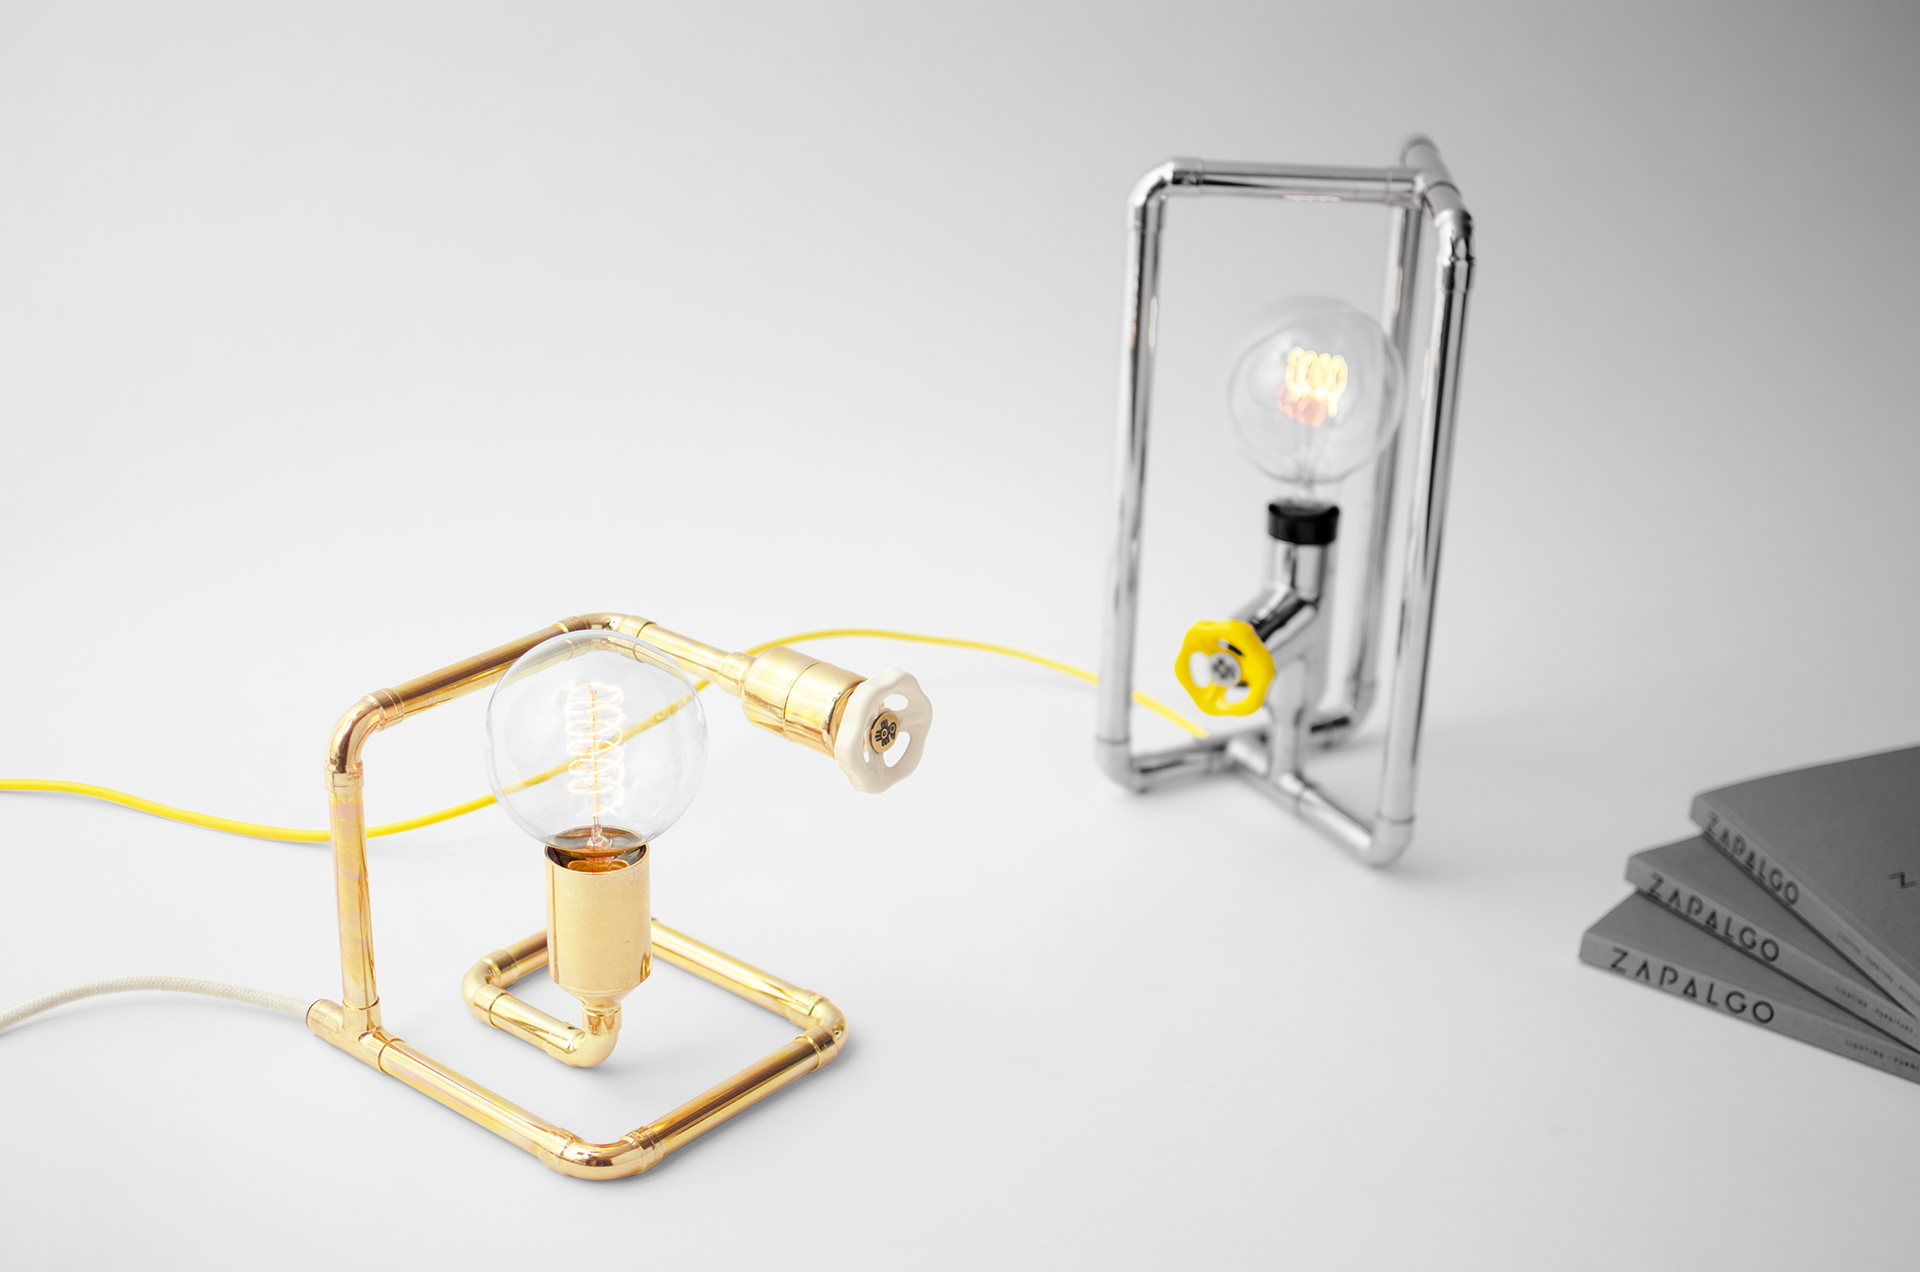 Zapalgo Stopo and Tribo.K Dimmable Table Lamps